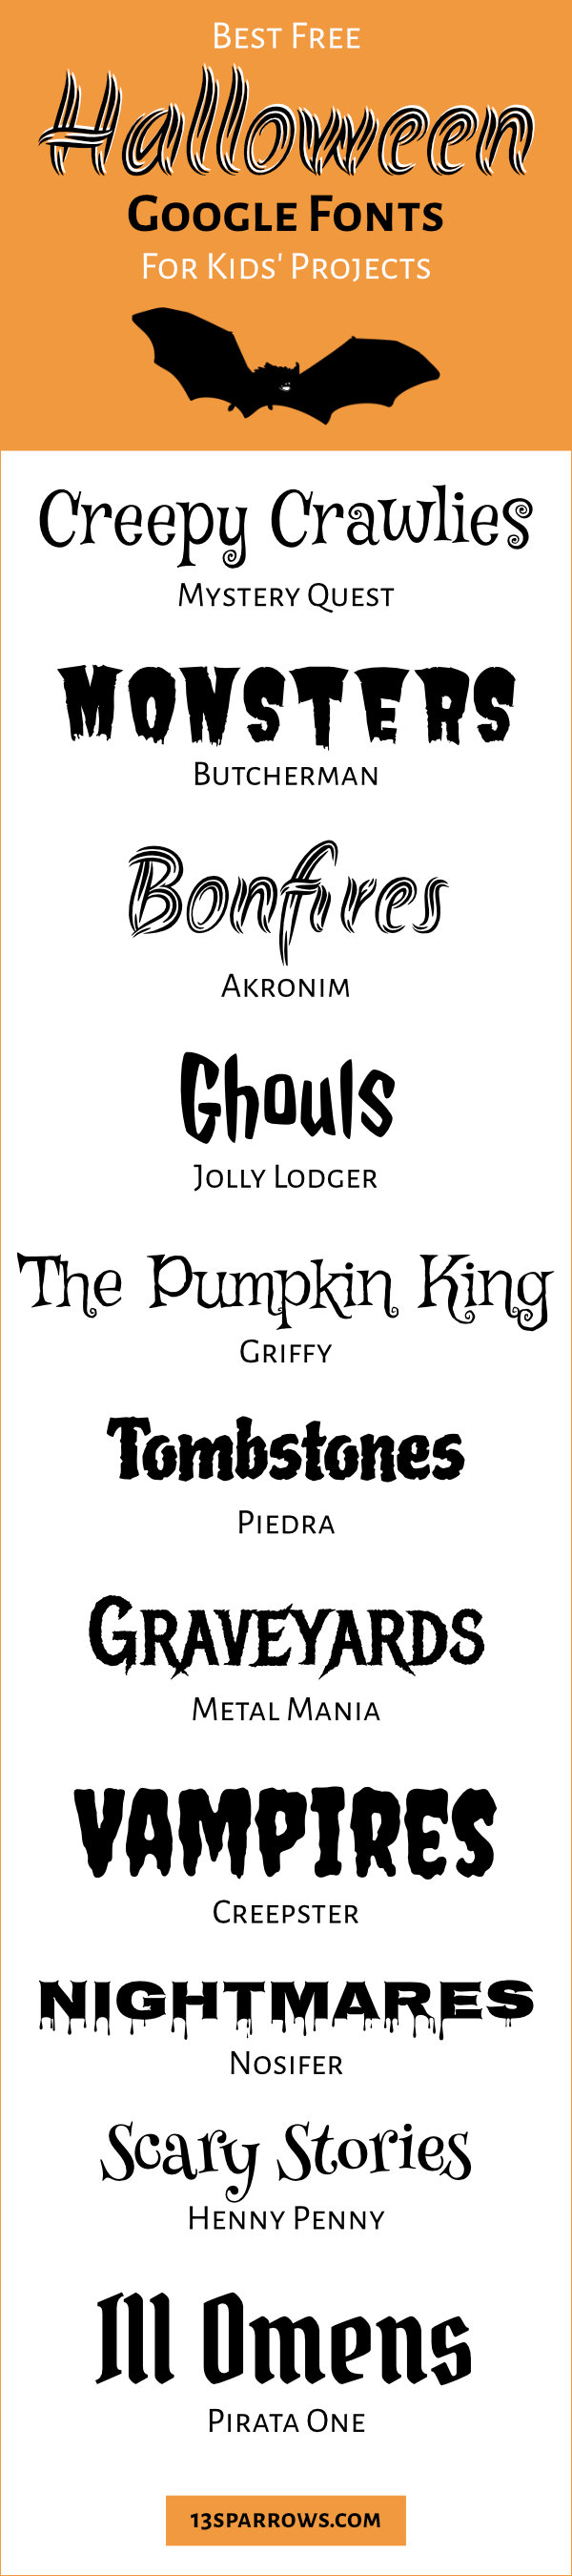 Free Halloween google fonts | 13sparrows If you are making spooky resources for kids, I've found some great free fonts!